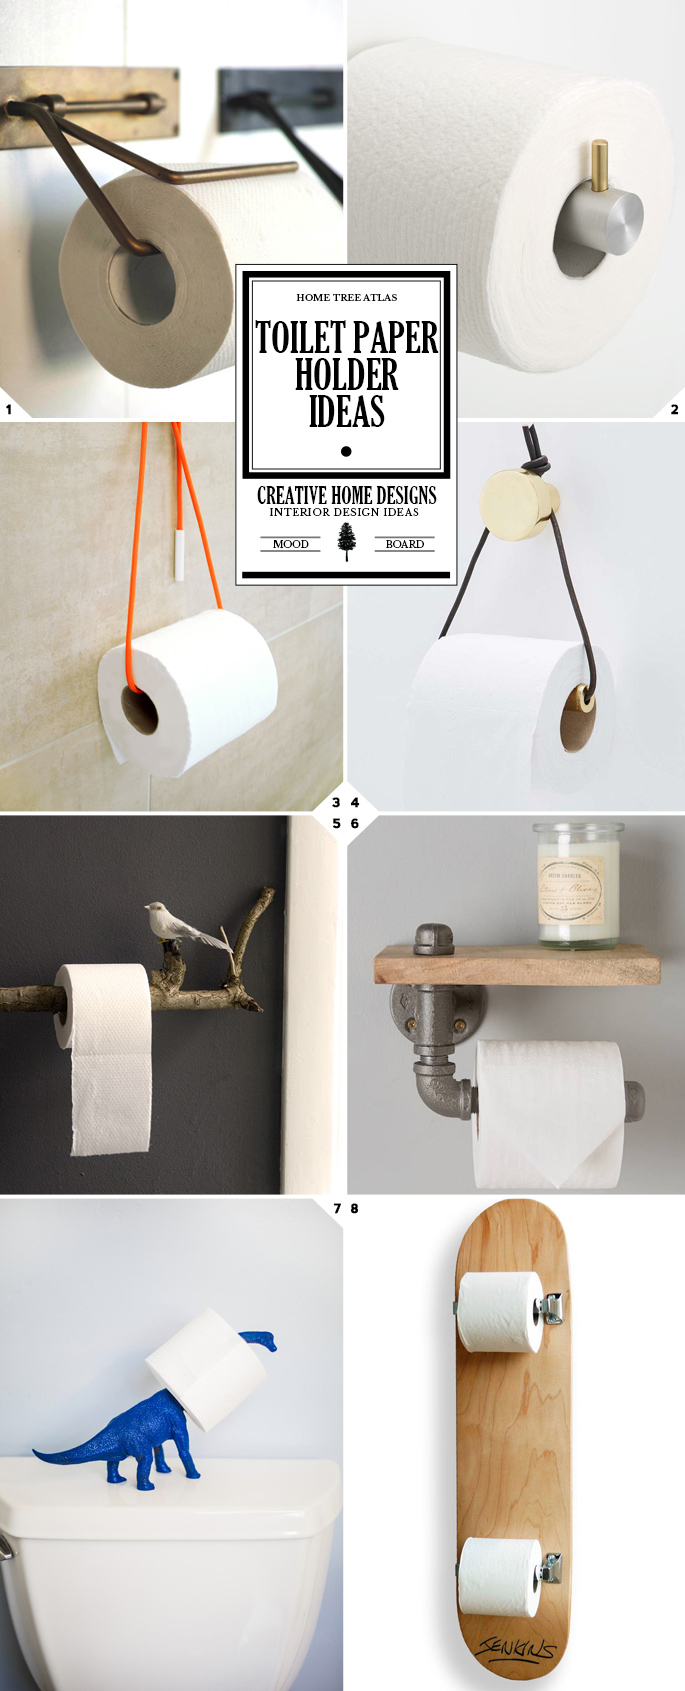 Toilet Paper Holder Ideas: From DIY Ideas to Modern Designs